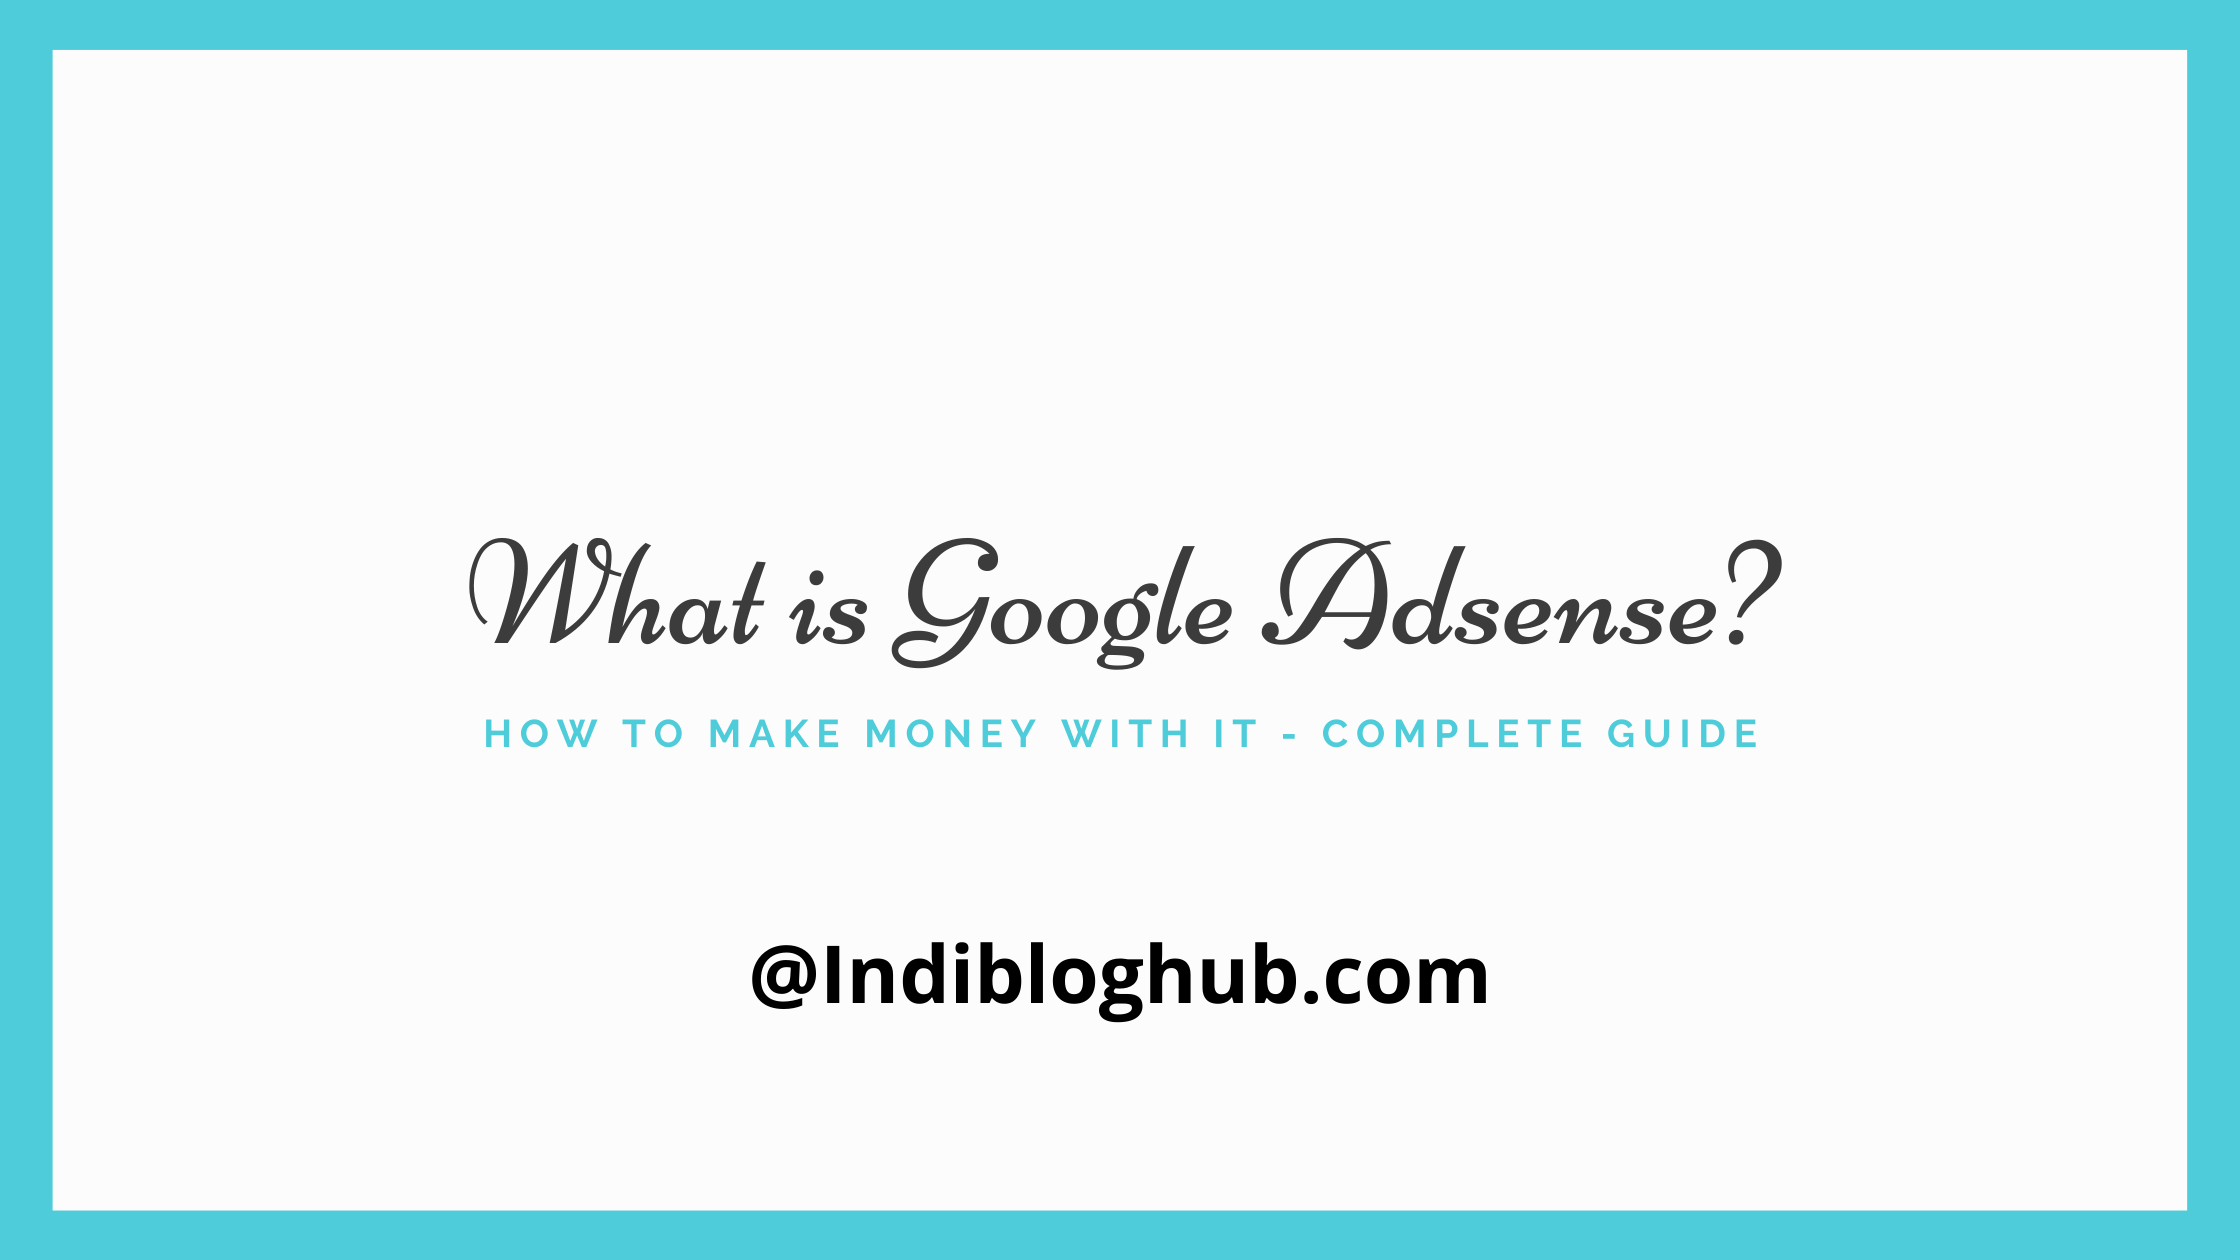 What is Google Adsense and How to Make Money With It